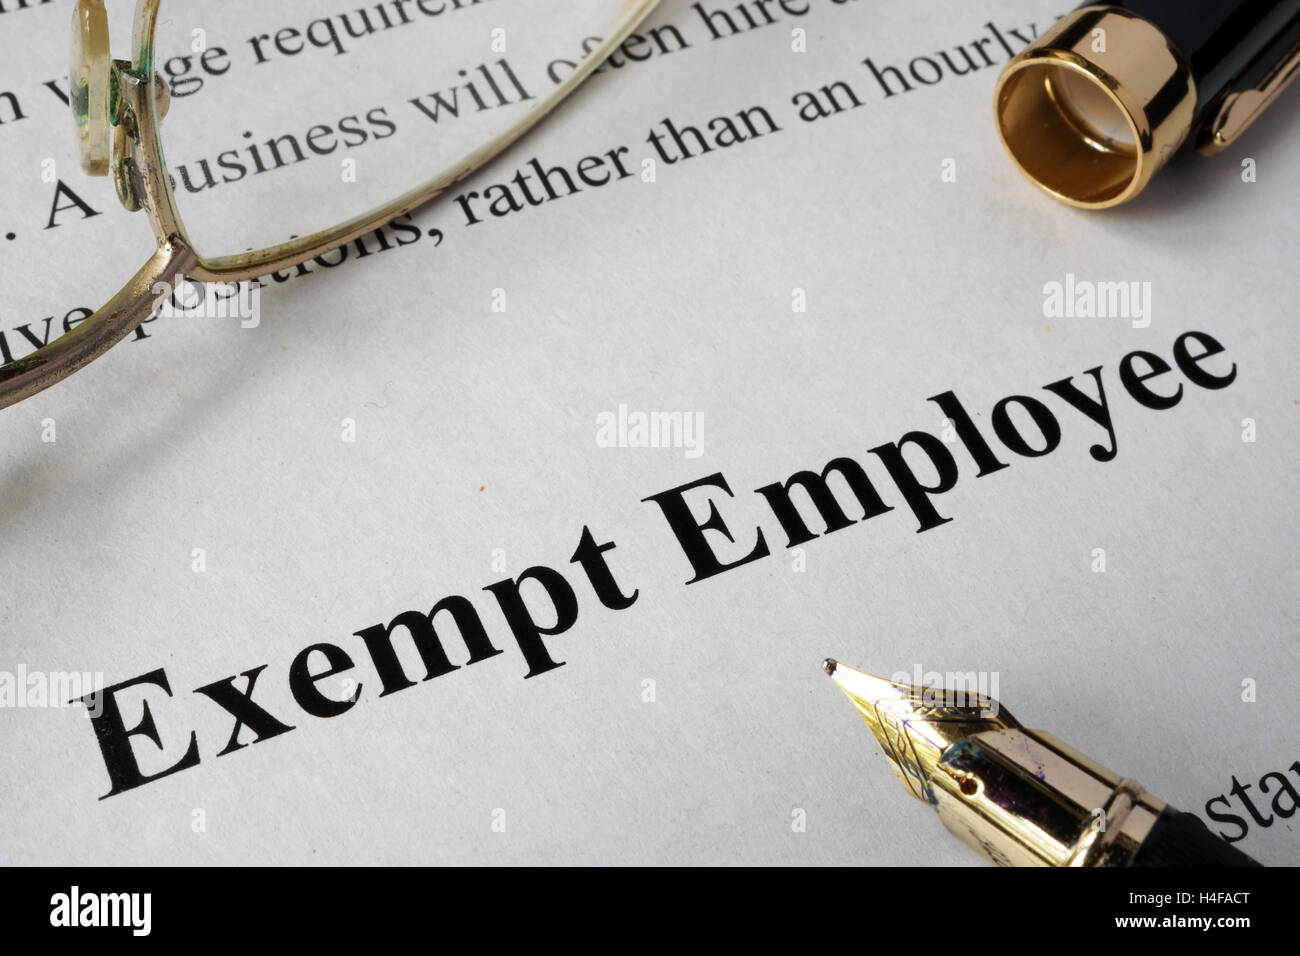 Exempt employee concept written on a paper. - Stock Image